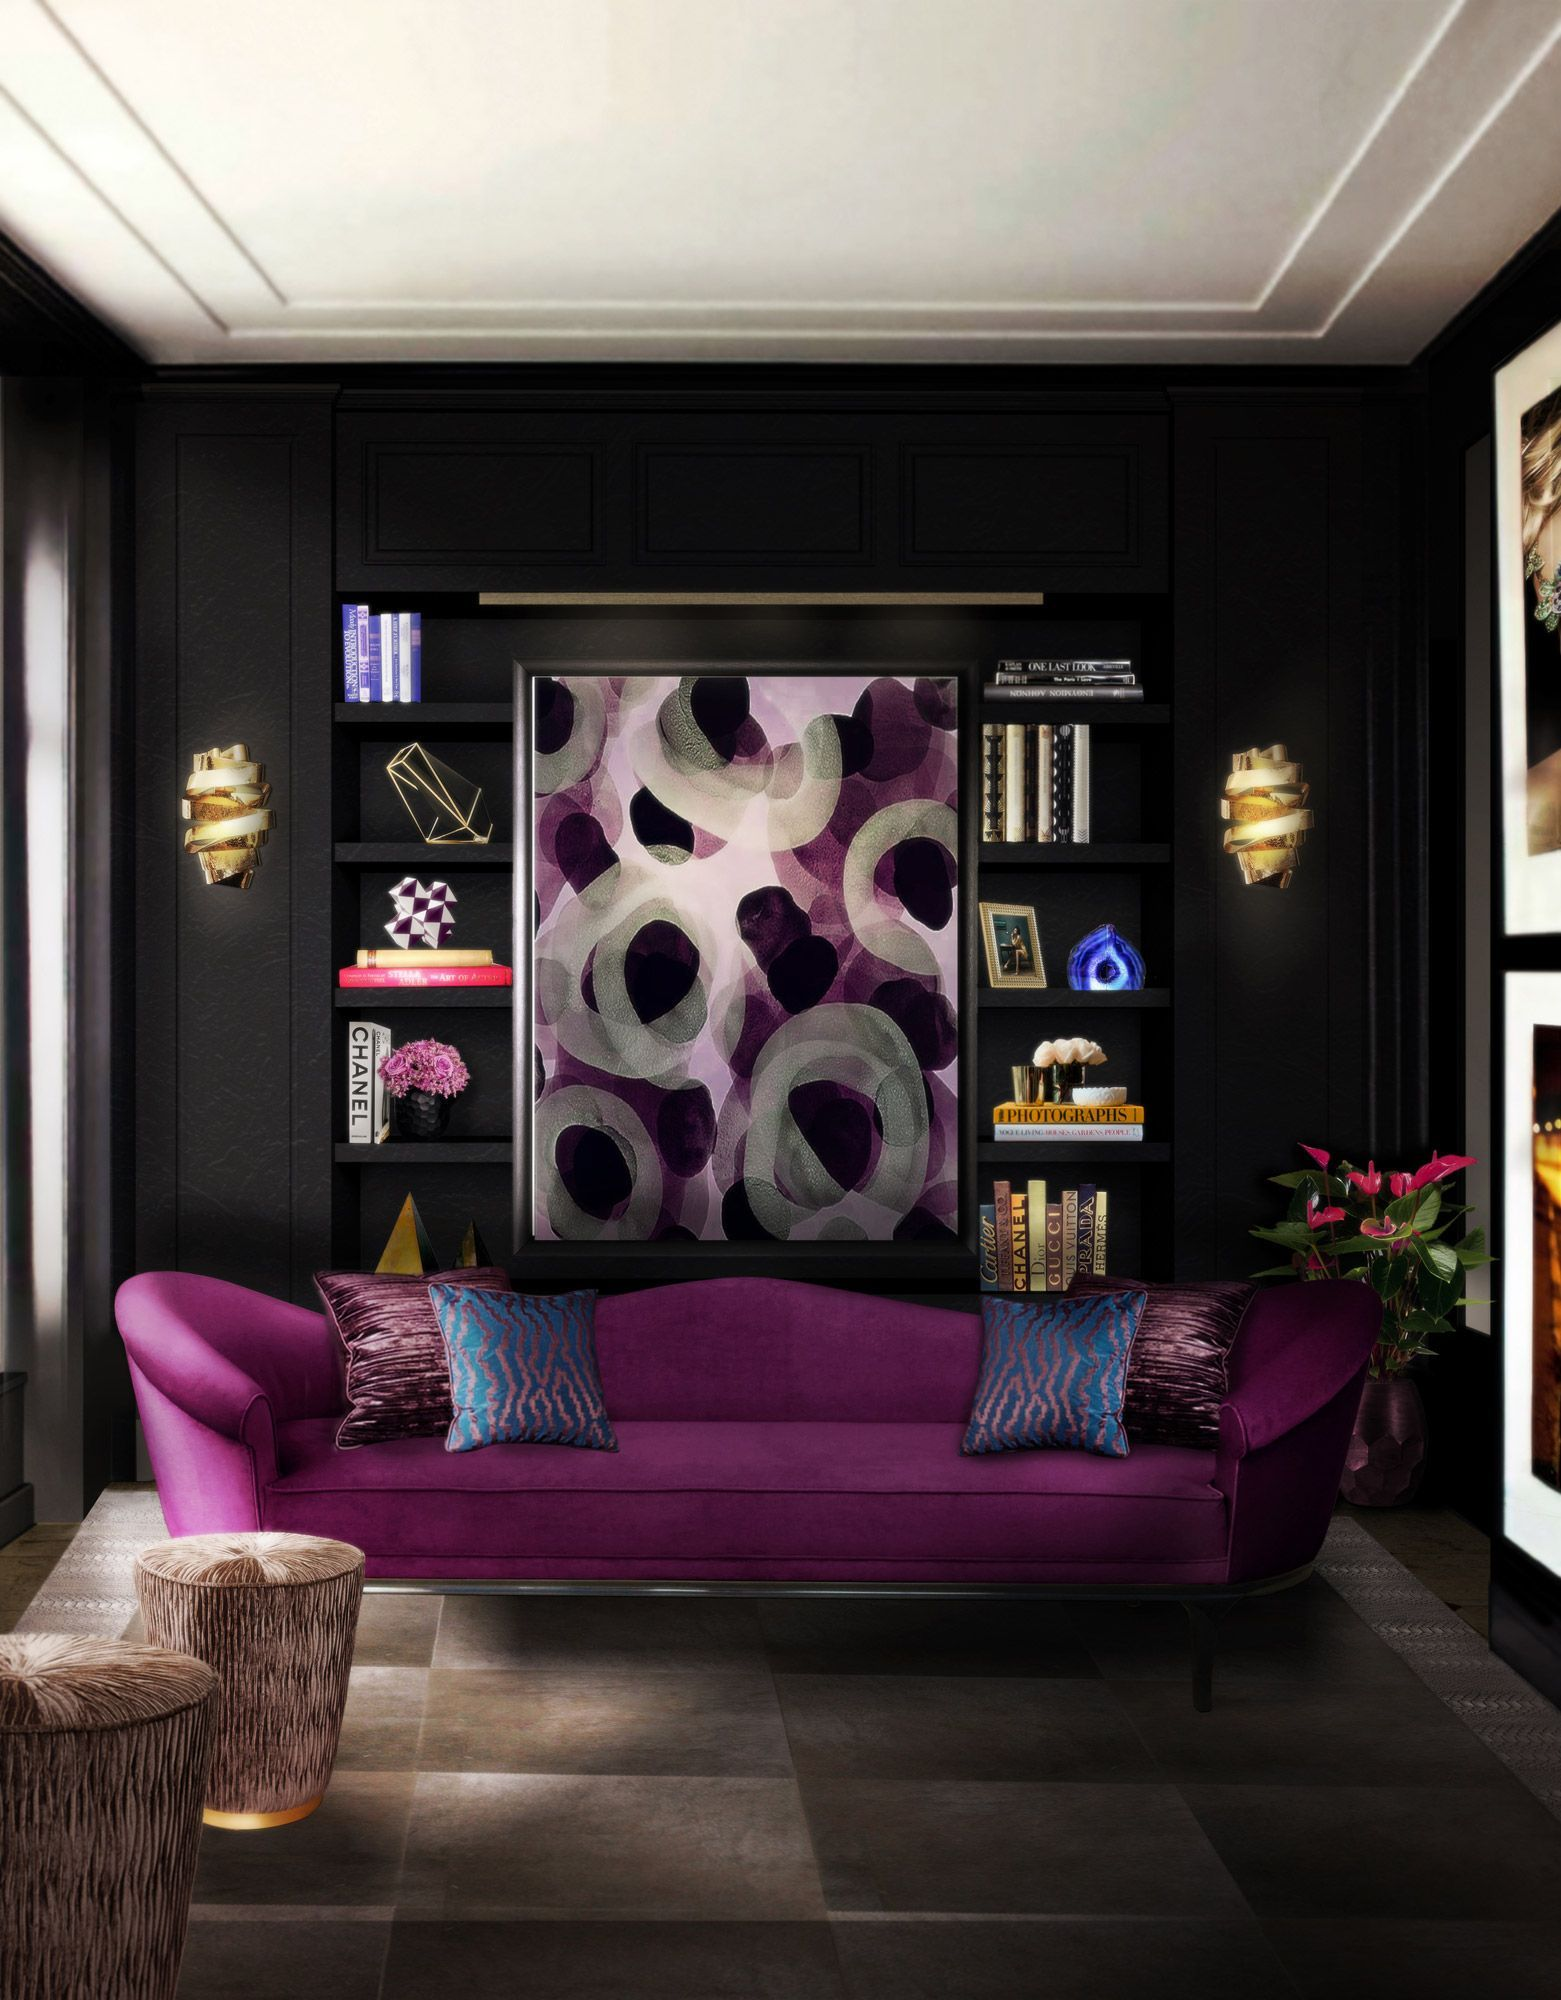 26 Interior Design Ideas With Wall Sconce: Chloe Wall Sconce By Koket